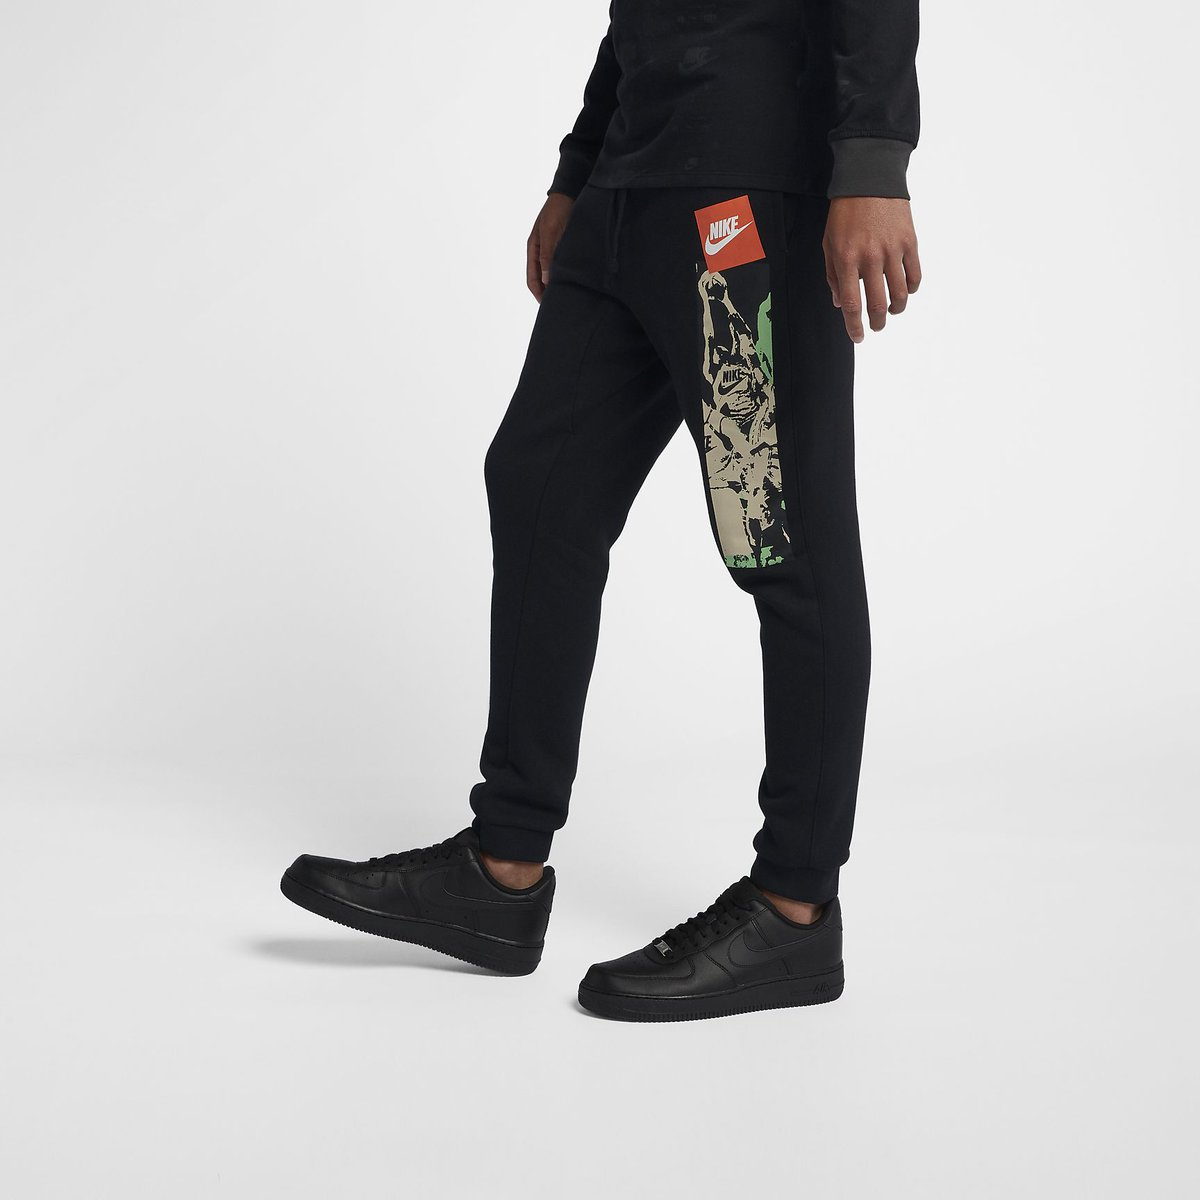 Nike Sportswear French Terry Joggers are now available BUY HERE   http   bit.ly 2E0xUSH pic.twitter.com OpopQAPyZe d90fe1c45